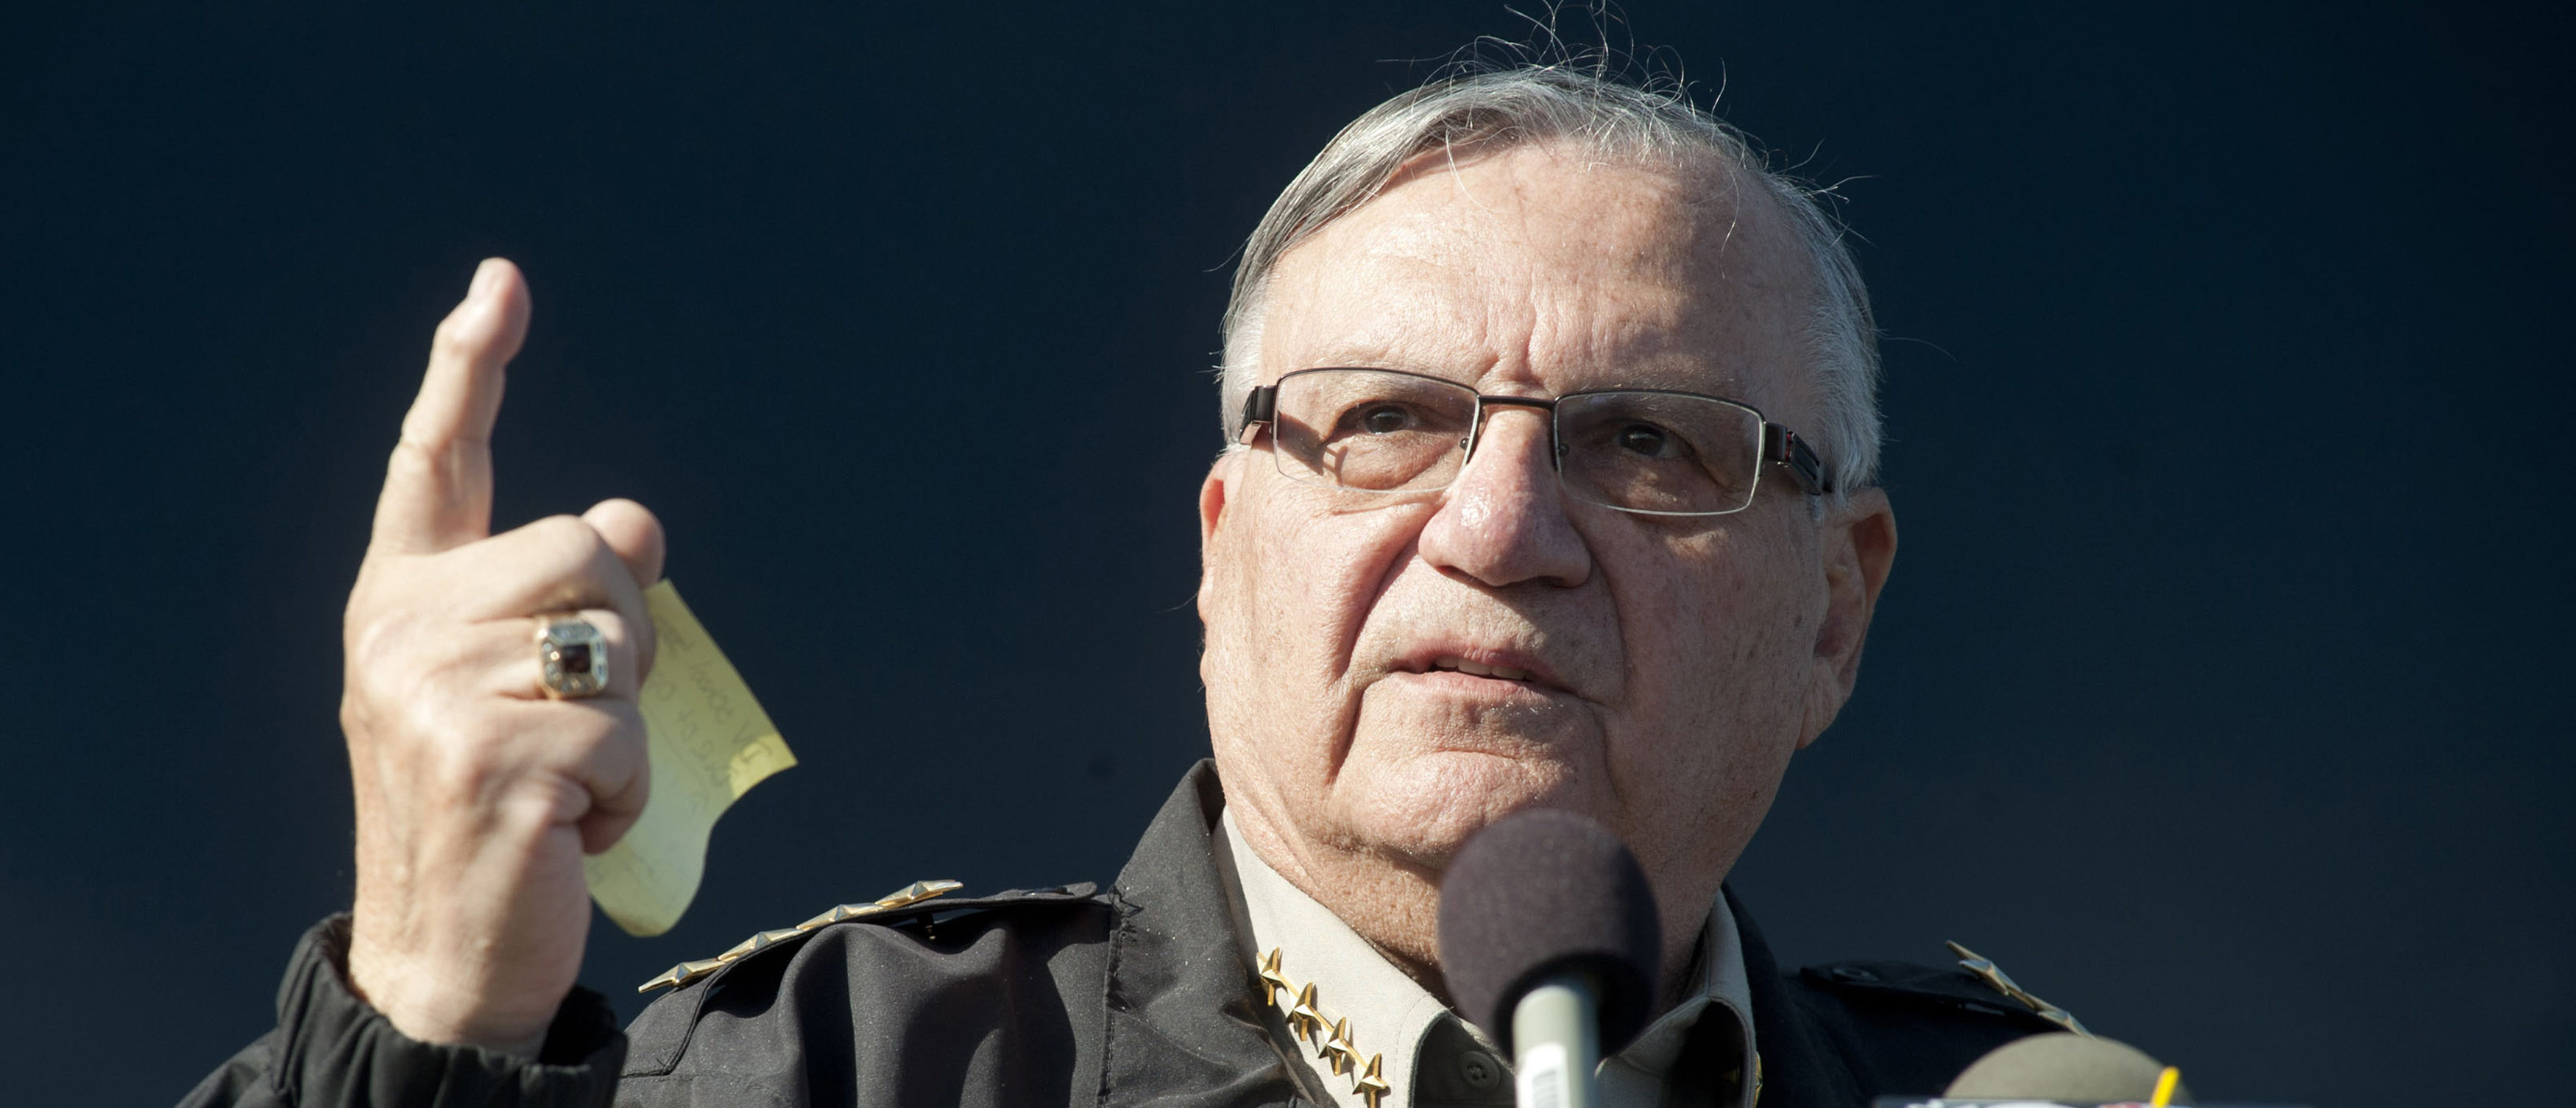 Maricopa County Sheriff Joe Arpaio announces newly launched program aimed at providing security around schools in Anthem, Arizona, U.S. January 9, 2013. REUTERS/Laura Segall